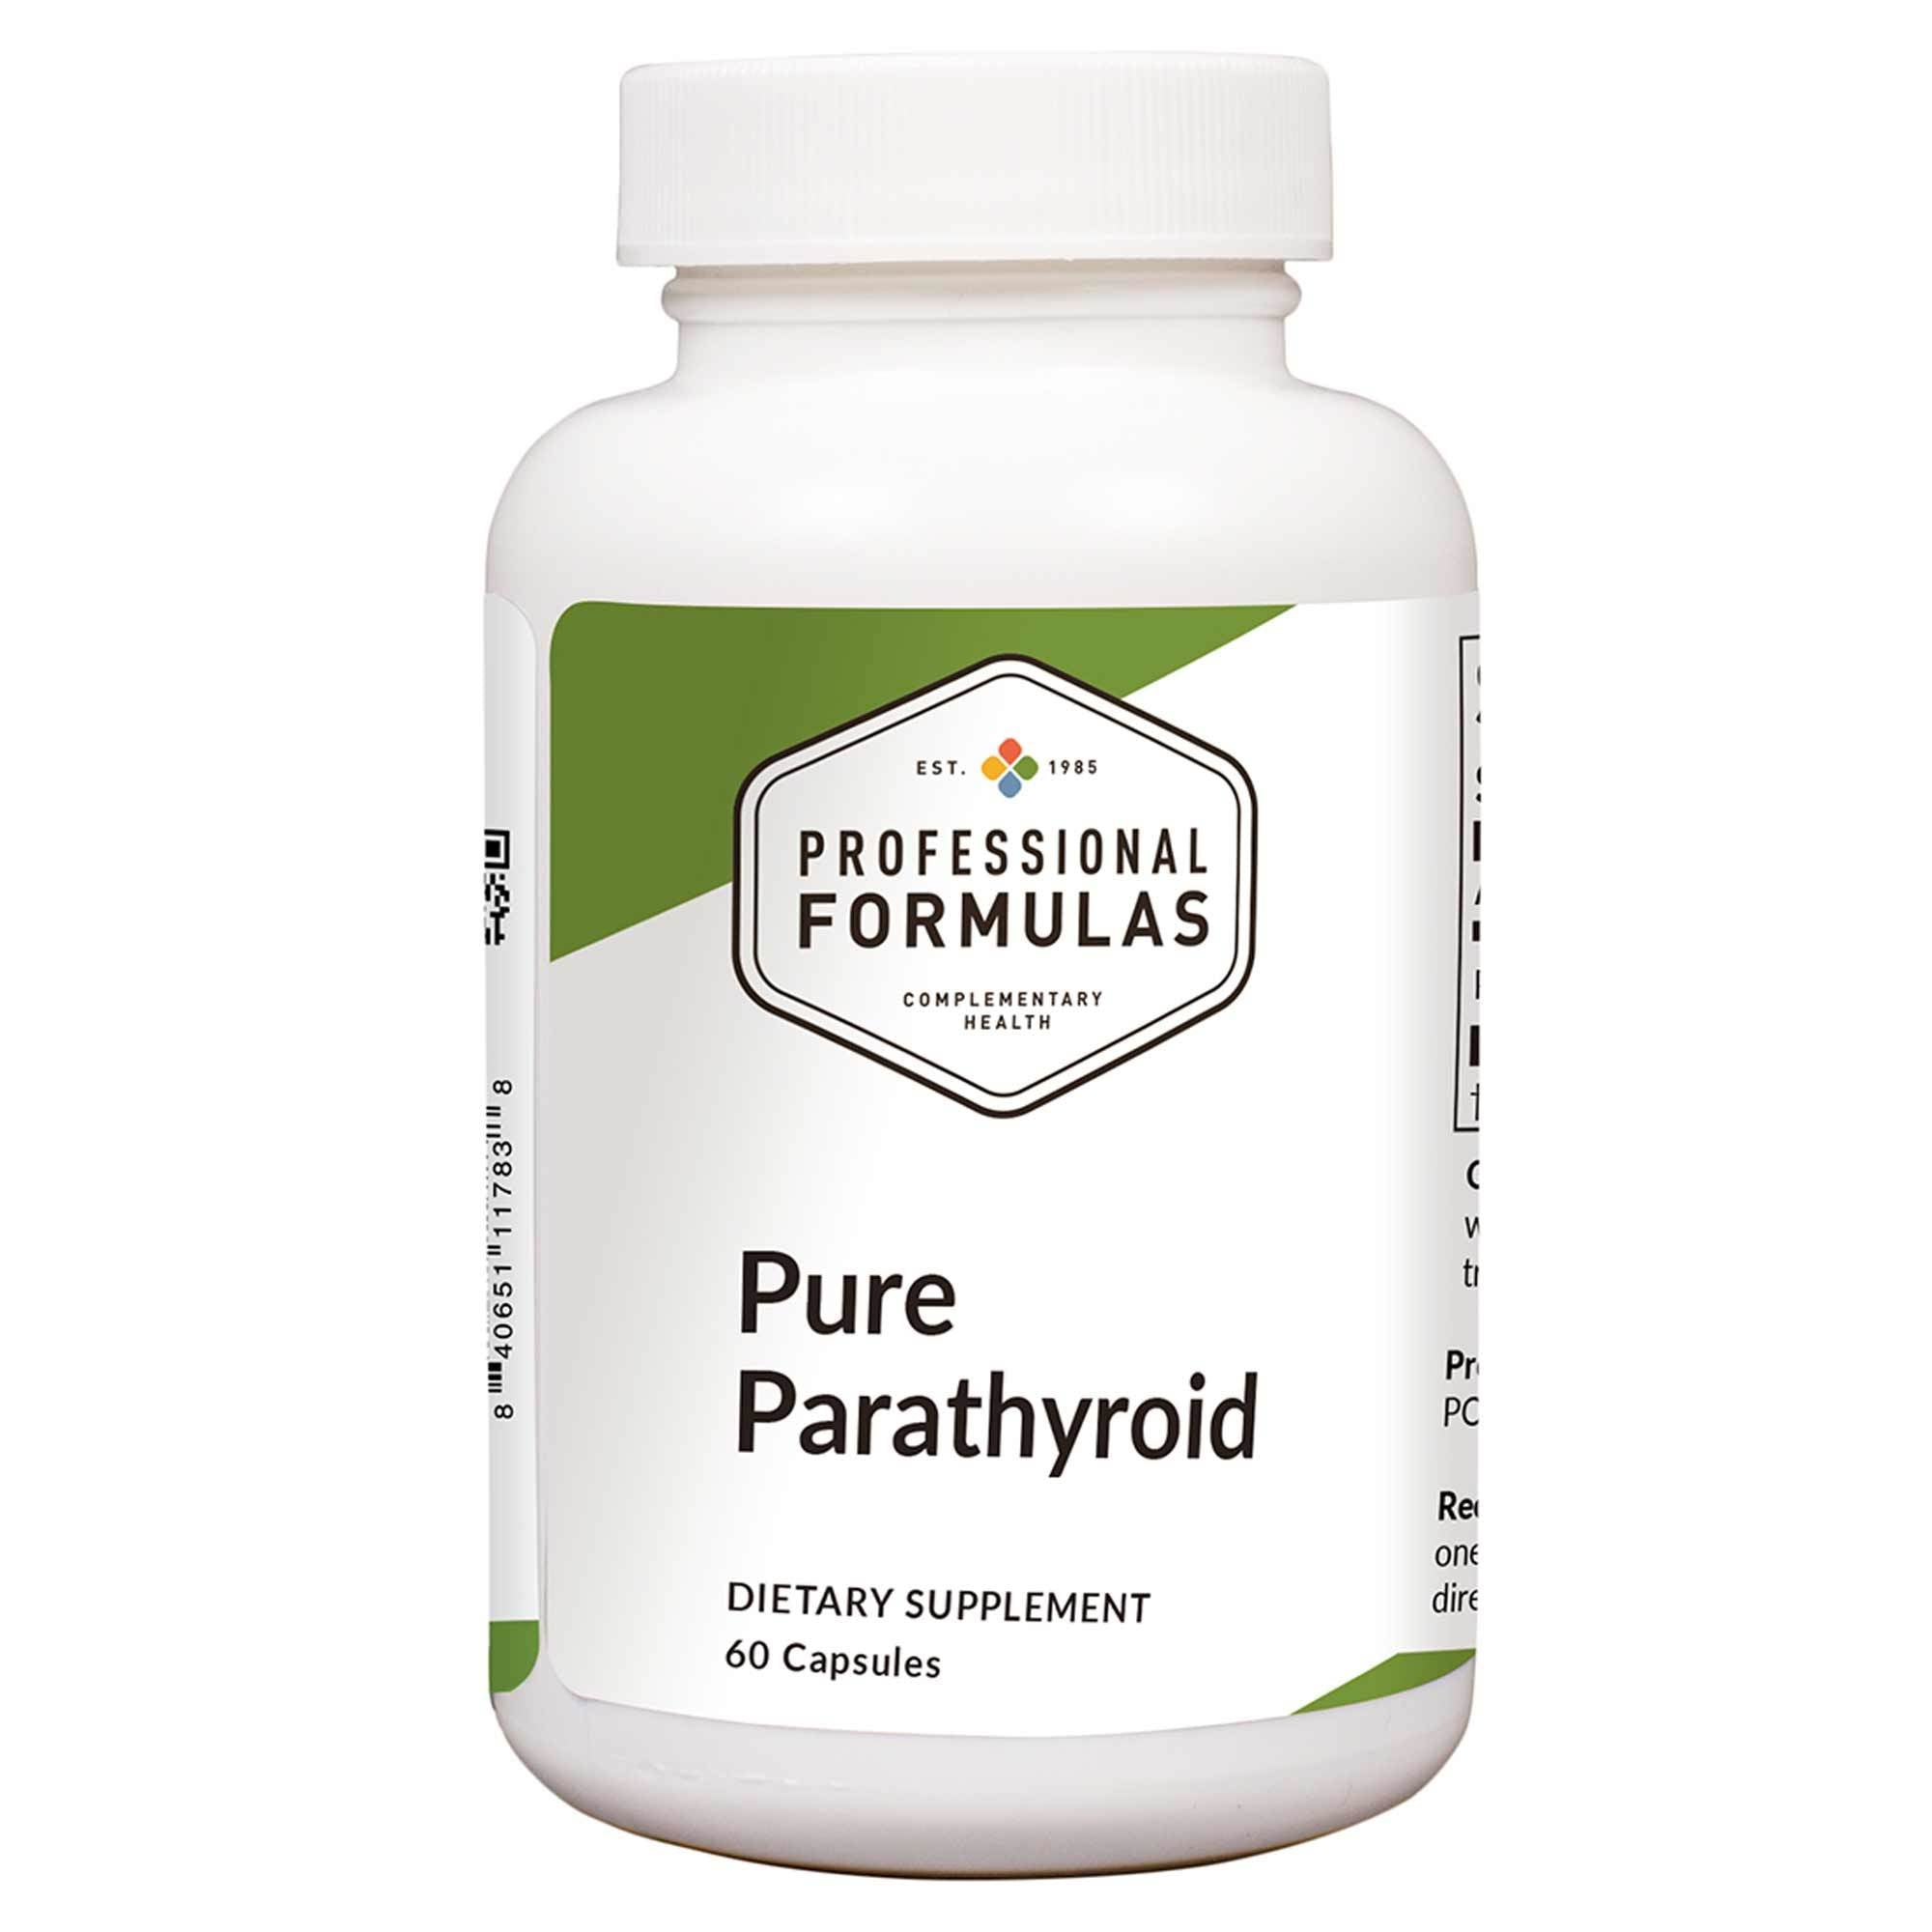 Pure Parathyroid 60c Professional Formulas